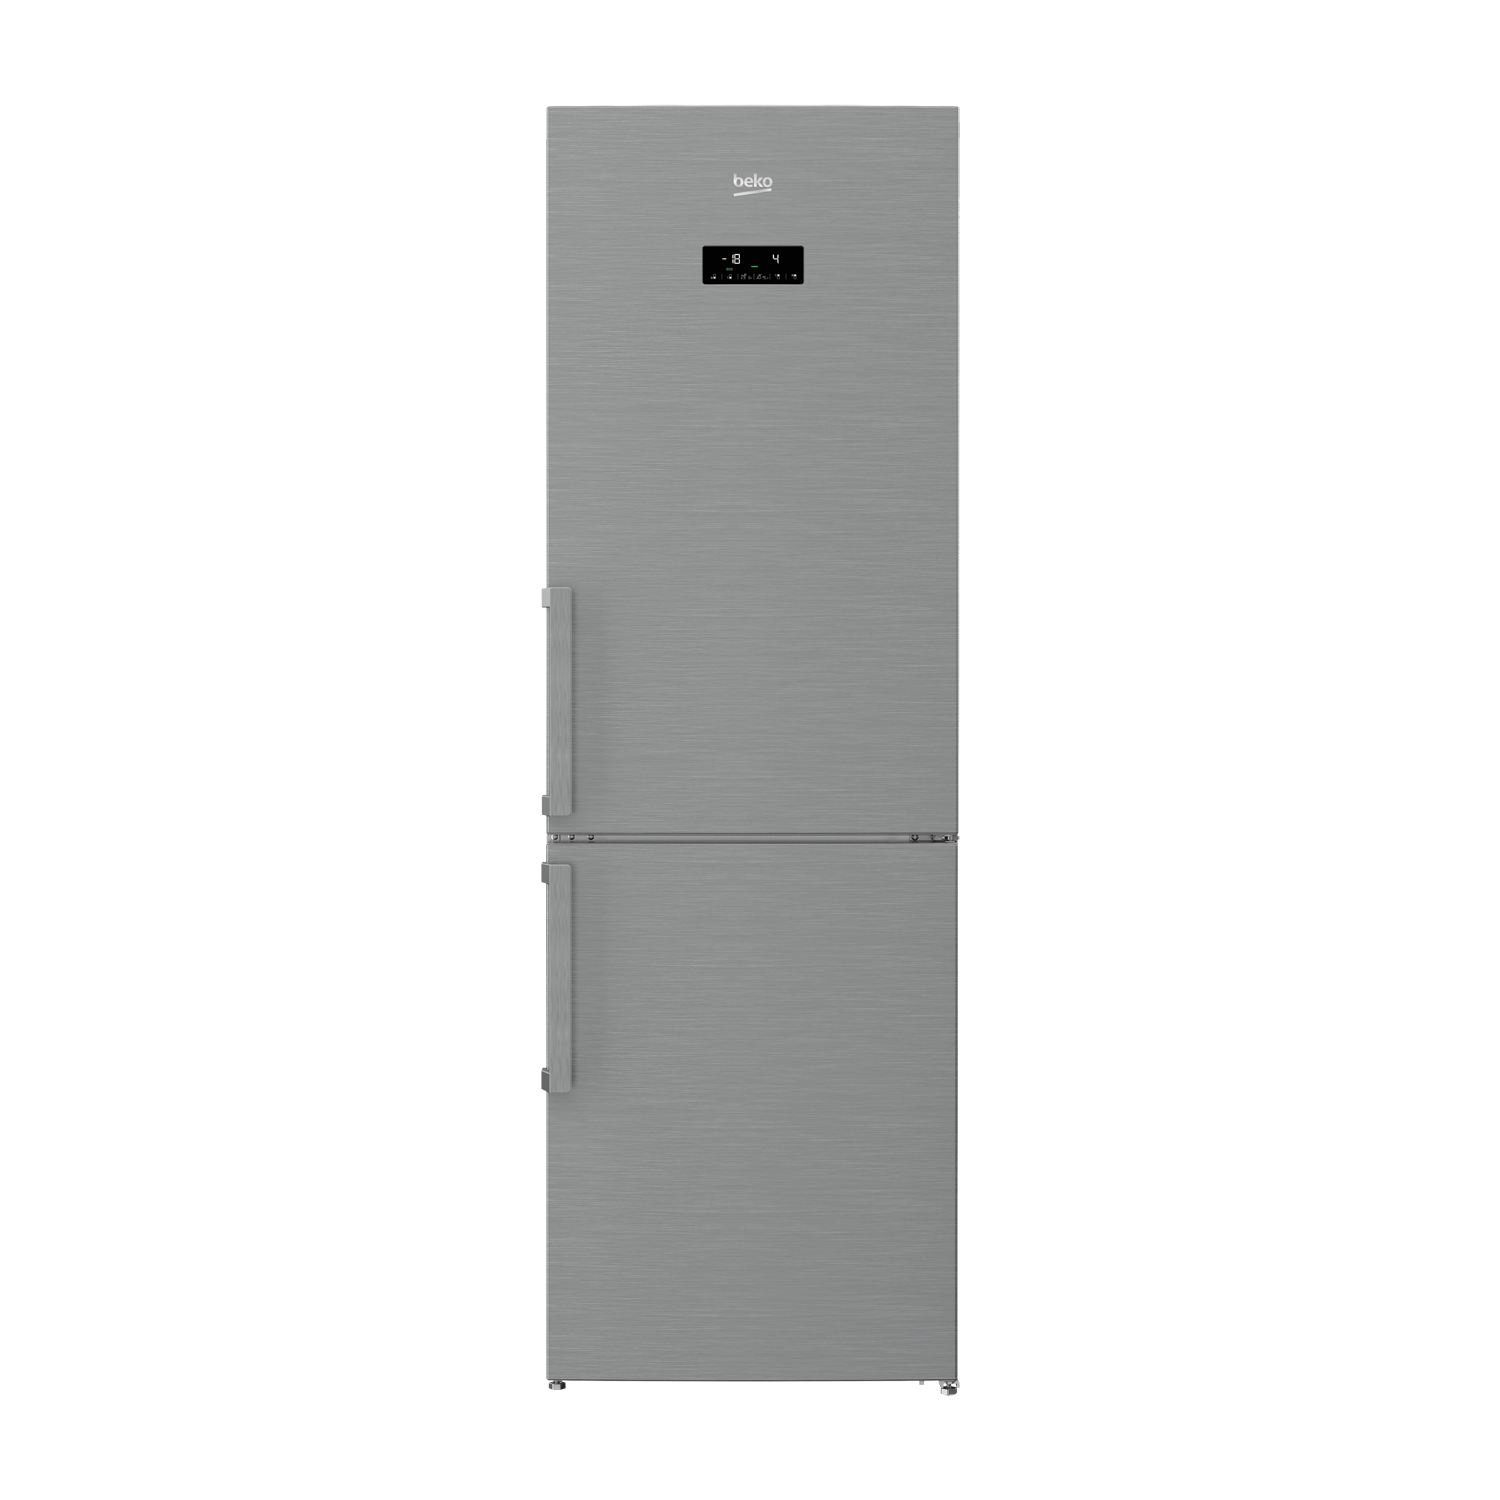 Beko RCNA320E21X Independiente 287L A+ Acero inoxidable nevera y ...